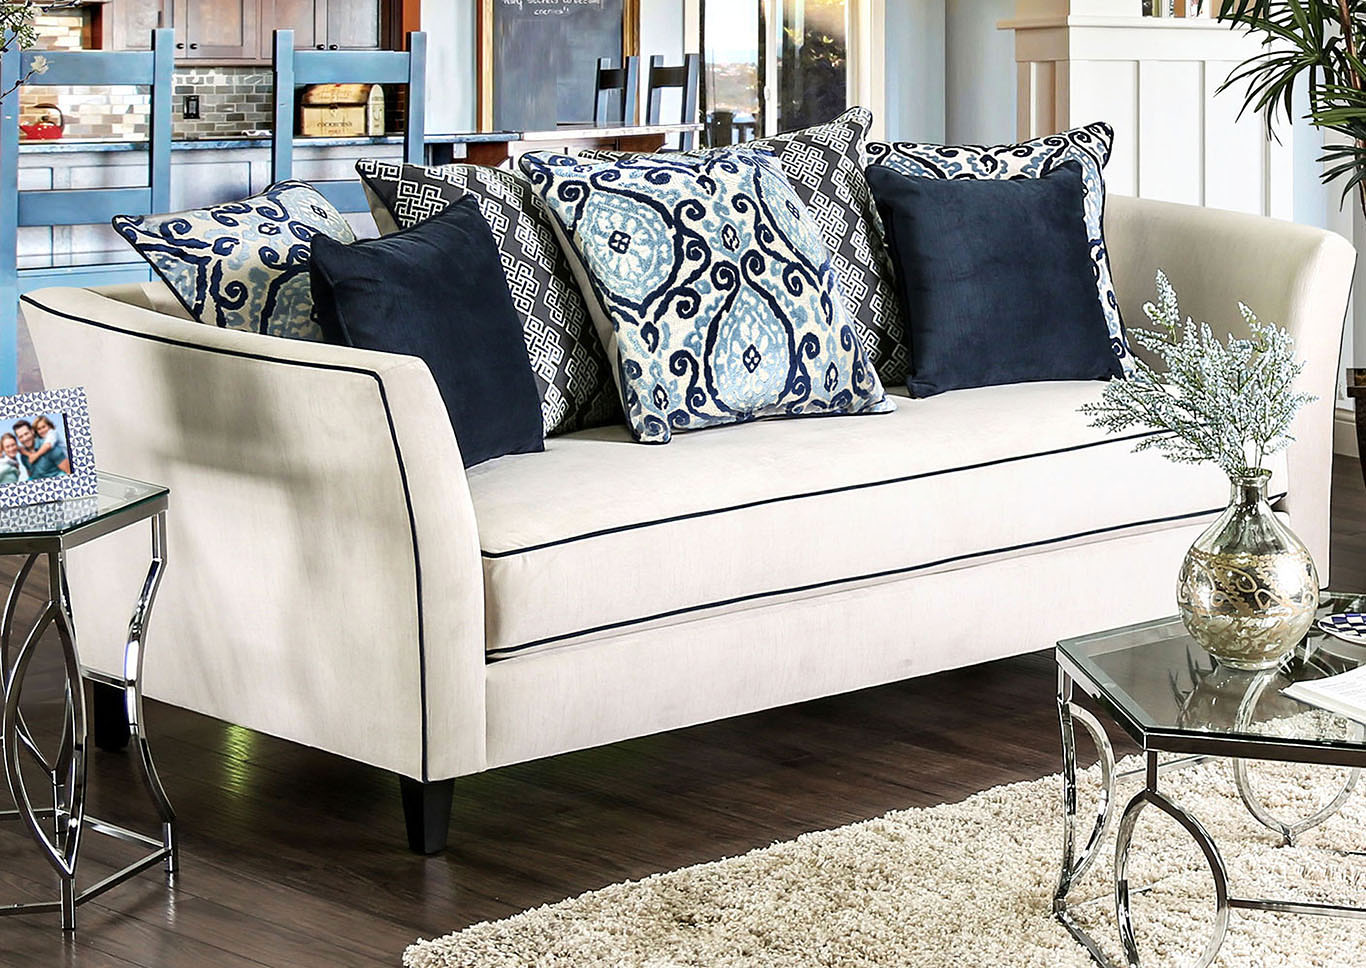 Groovy Best Buy Furniture And Mattress Chantal Off White Sofa W Pillows Squirreltailoven Fun Painted Chair Ideas Images Squirreltailovenorg